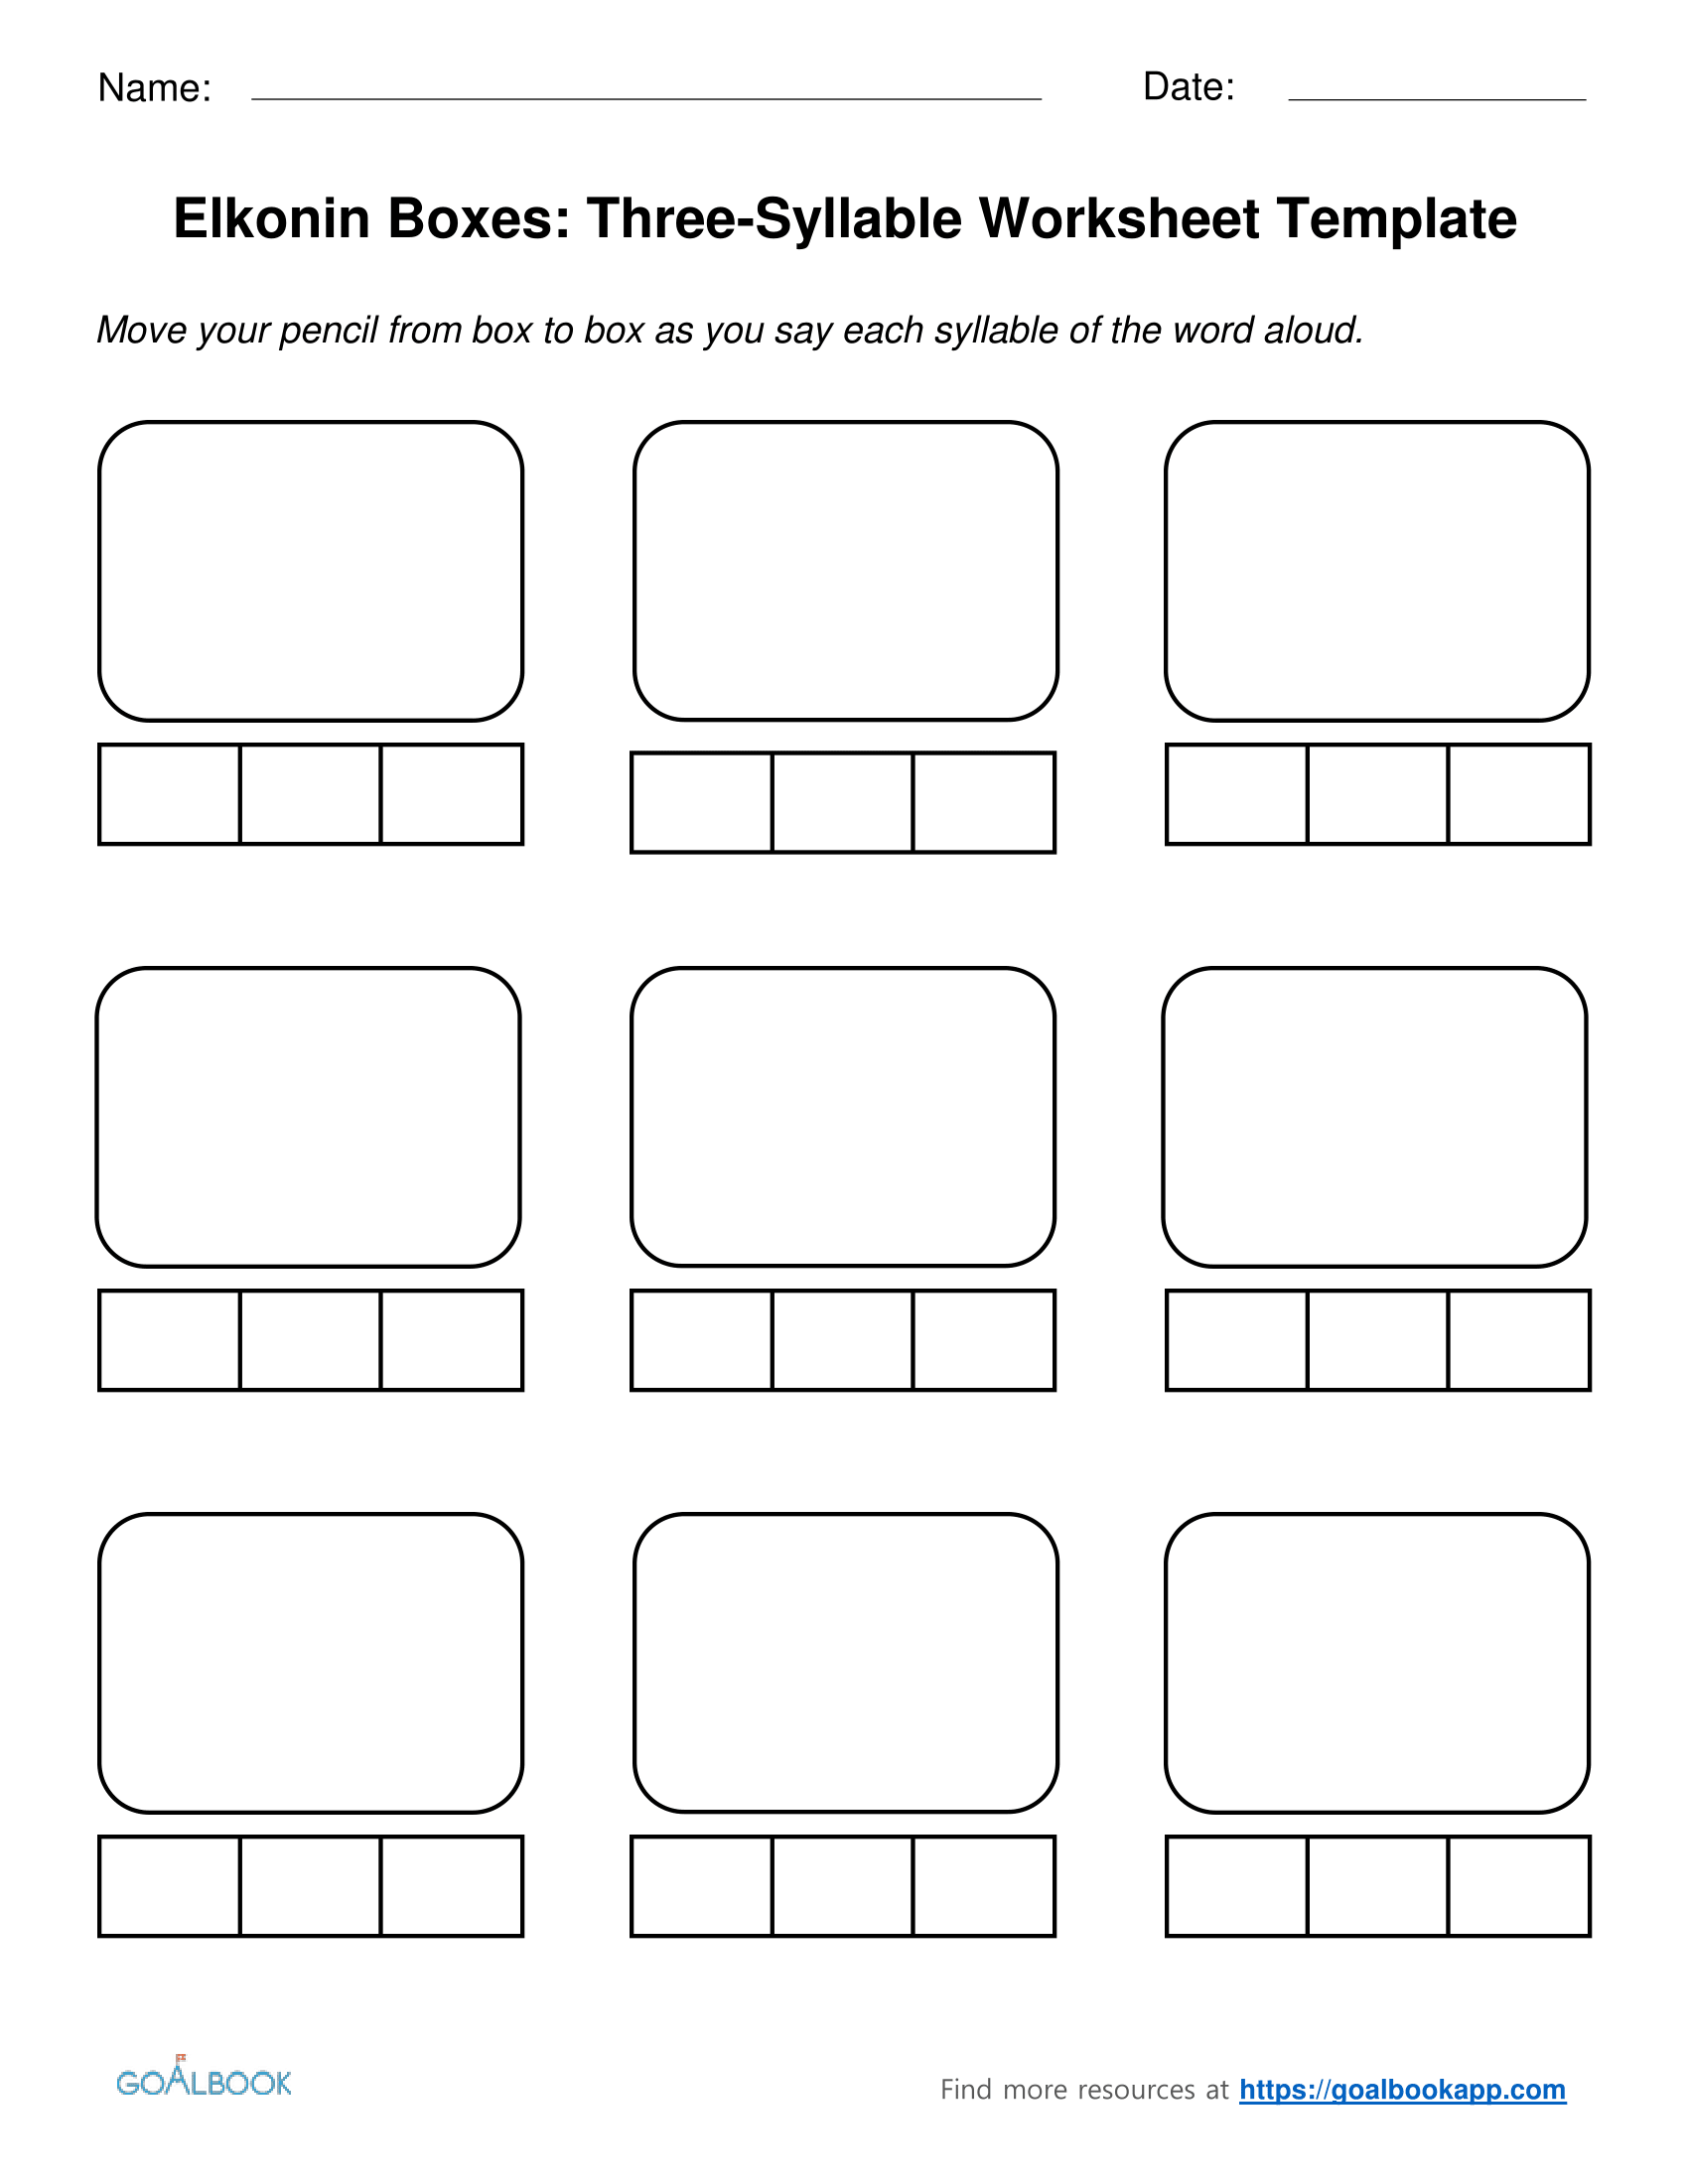 Three Syllable Elkonin Boxes And Worksheets